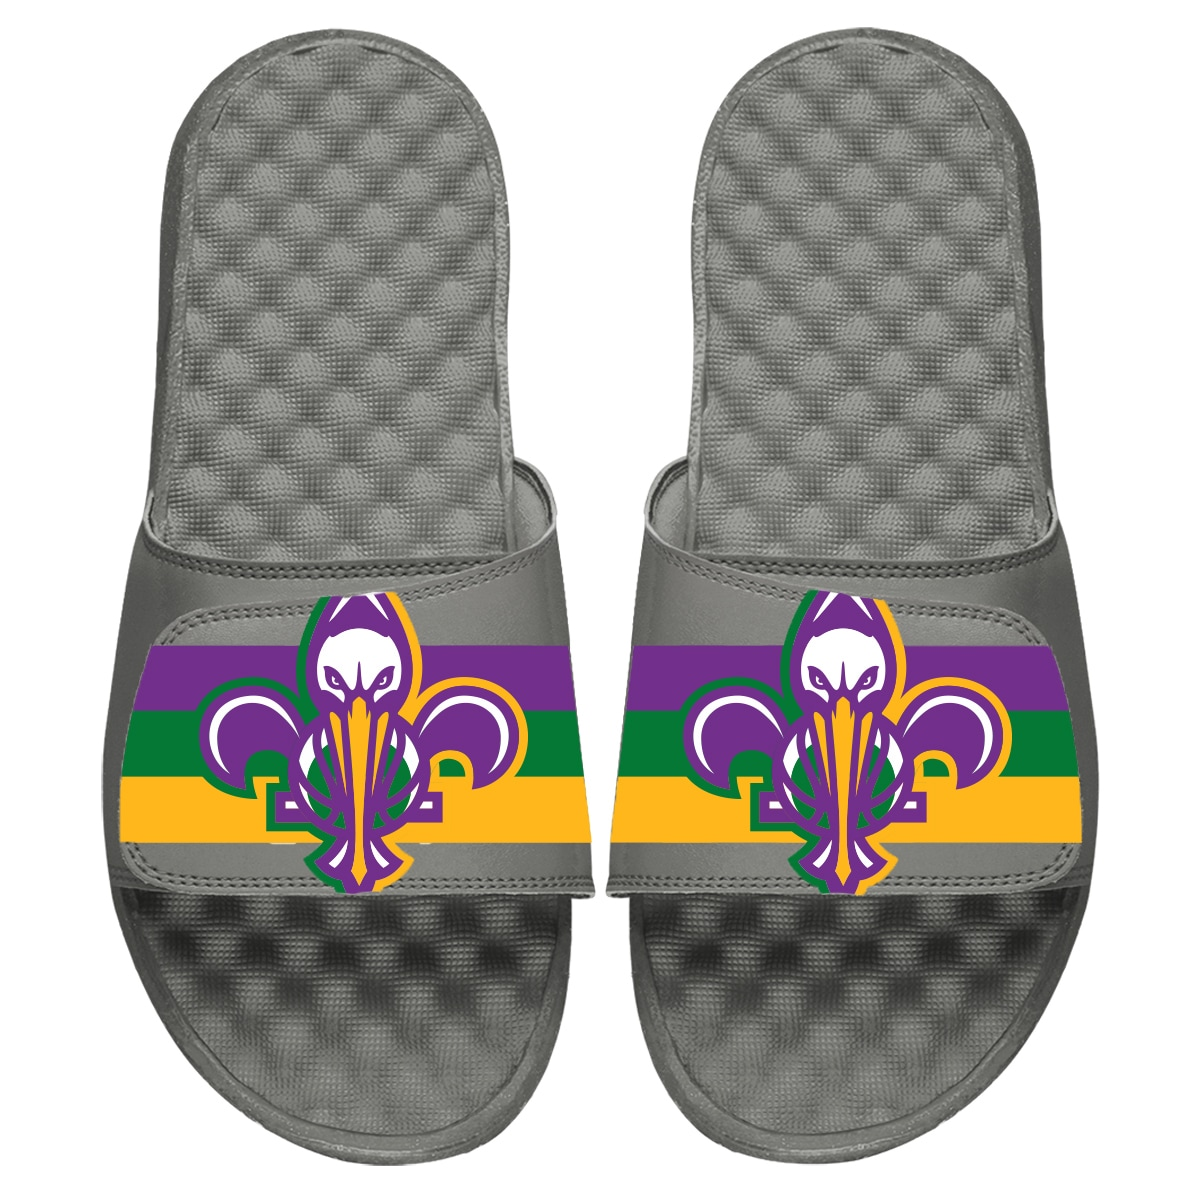 New Orleans Pelicans ISlide Youth 2019/20 City Edition Slide Sandals - Gray